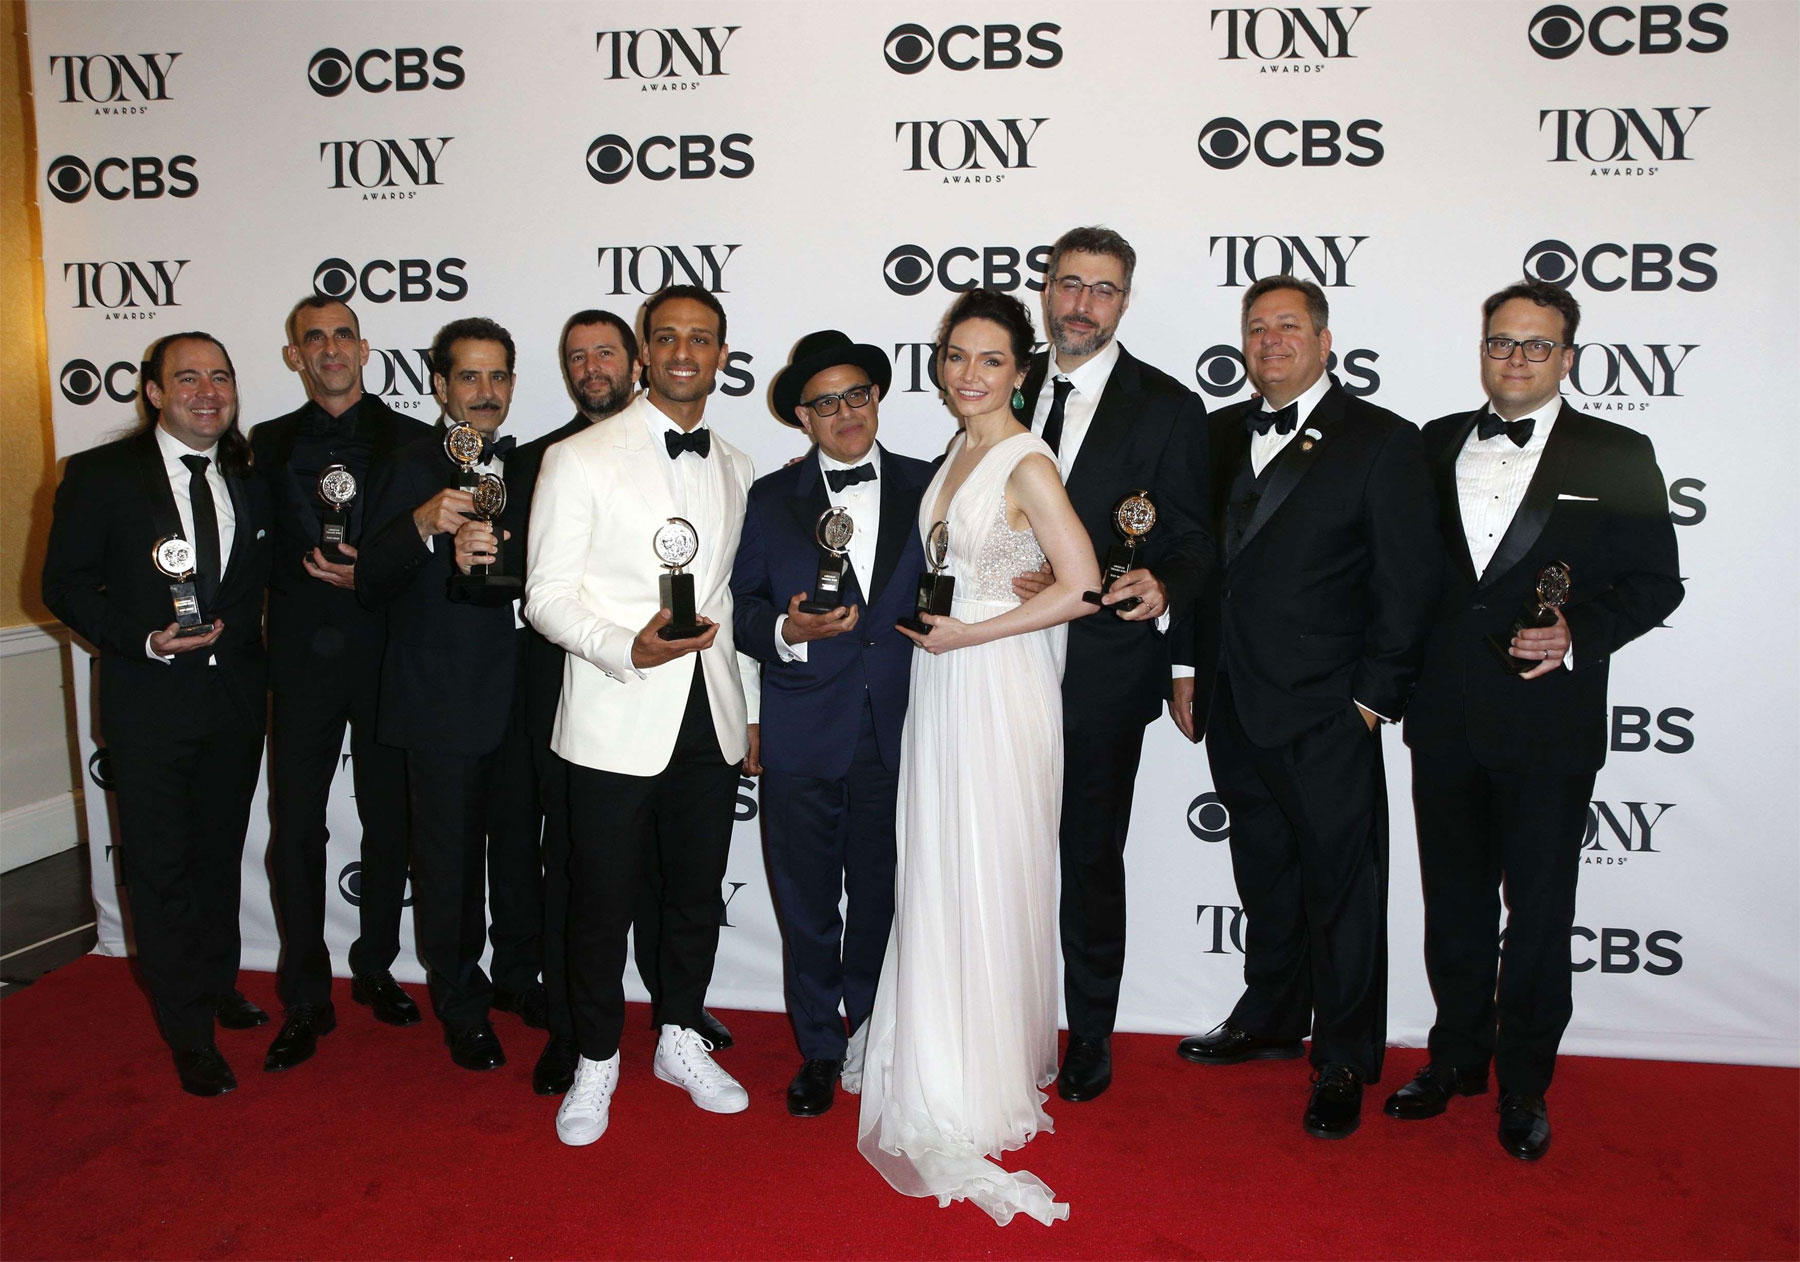 Tony Awards